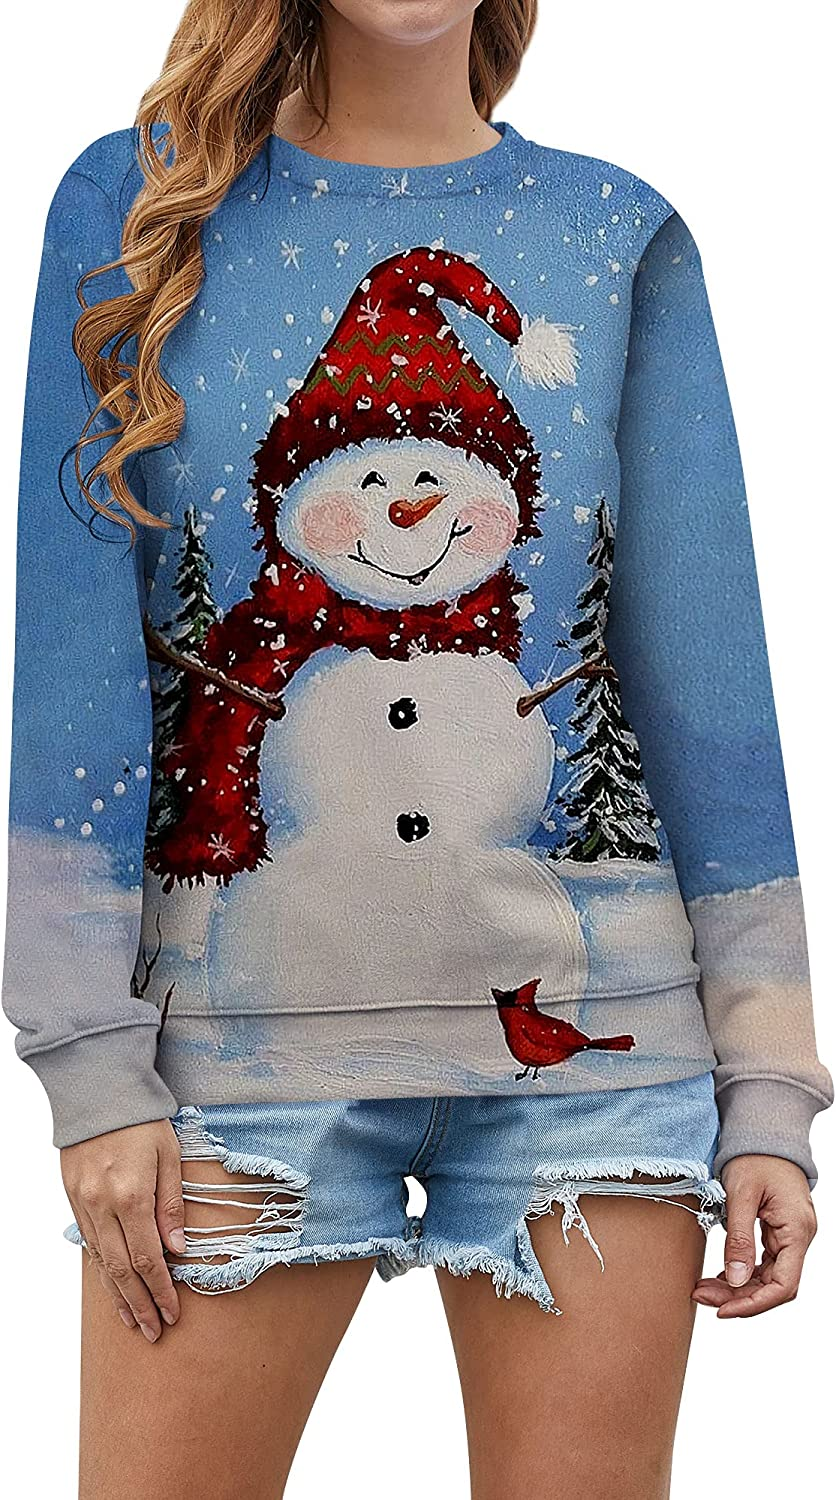 RMCMS Christmas Top For Women, Xmas Symbolic Graphic For Party, Gathering, Celebrating, Family Sweatshirt